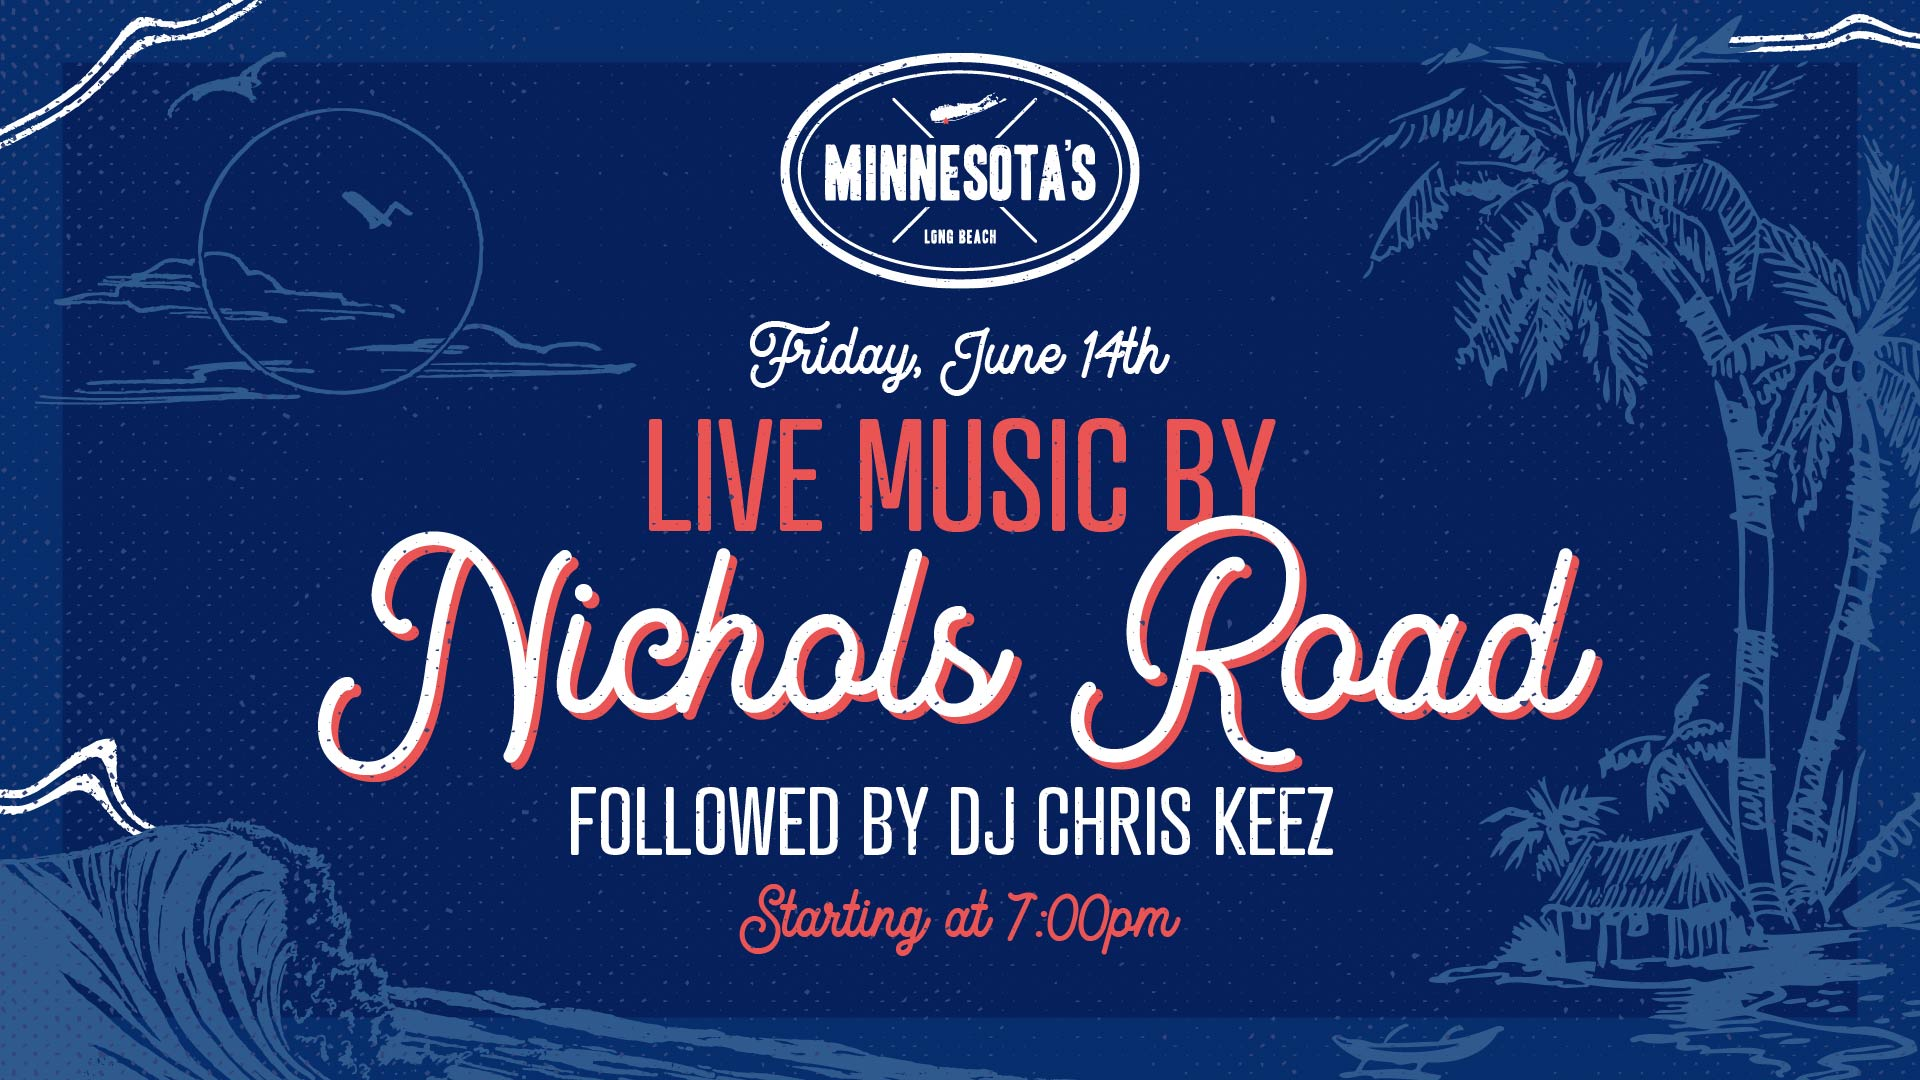 live music by nichols road followed by dj chris keez on june 14th at 7pm